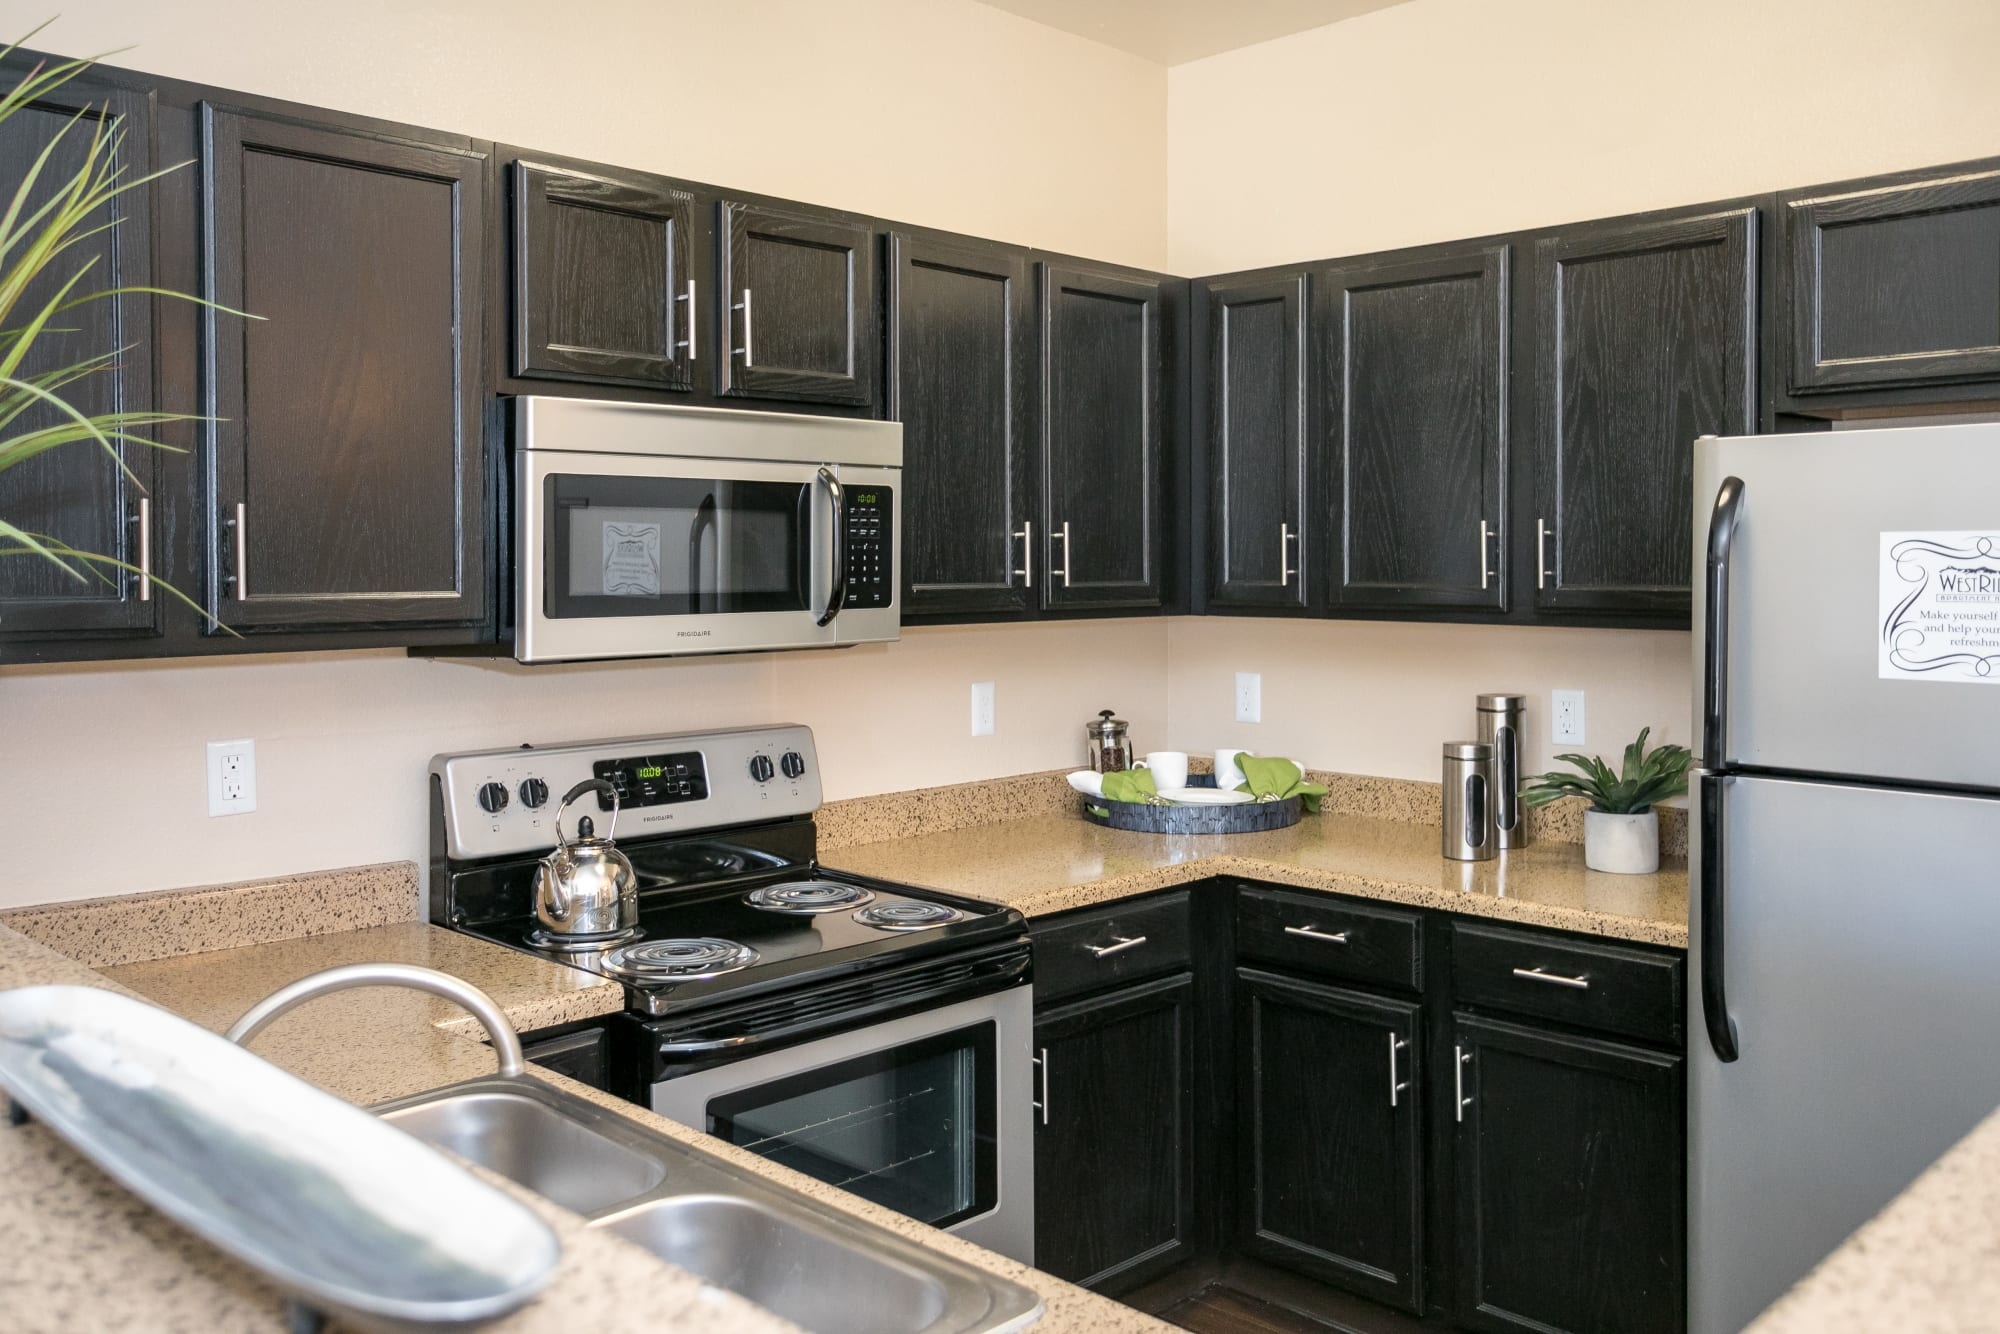 Fully equipped kitchen with dark cabinetry and stainless steel appliances at Westridge Apartments in Aurora, Colorado